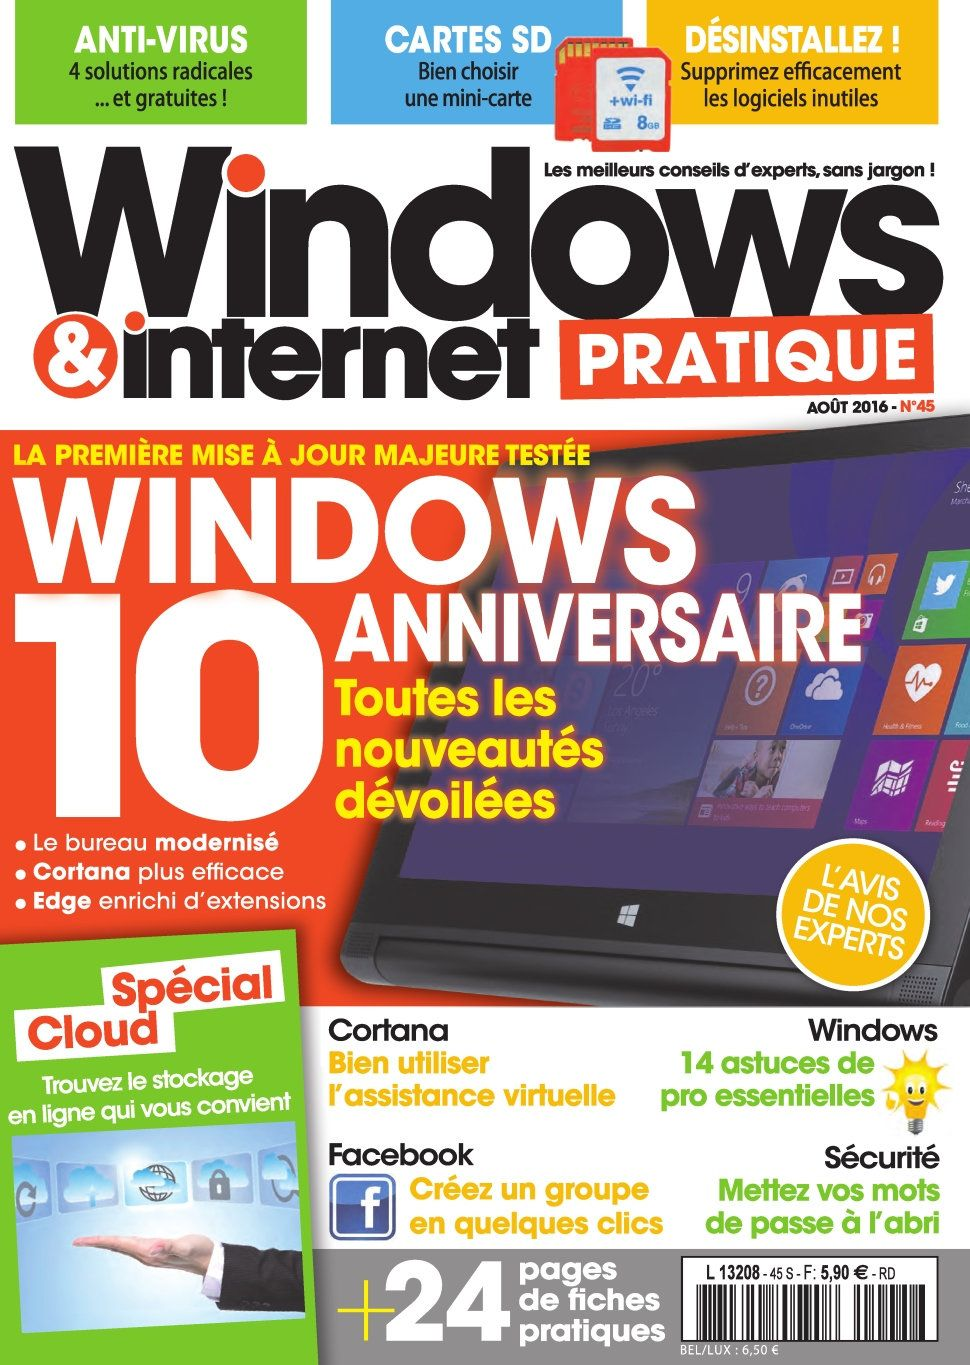 Windows & Internet Pratique 45 - Aout 2016